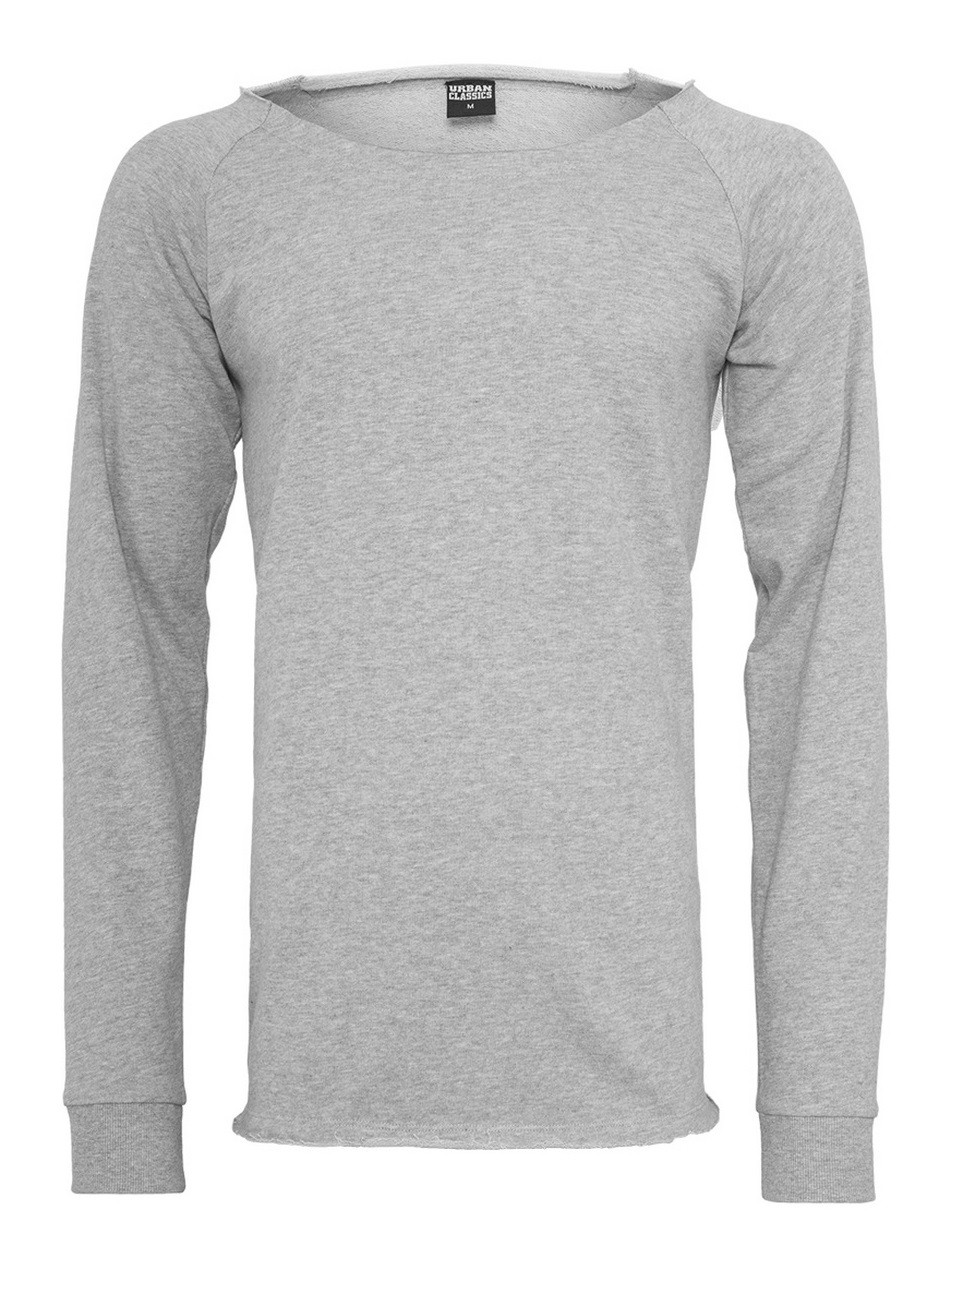 urban-classics-herren-long-open-edge-terry-crewneck